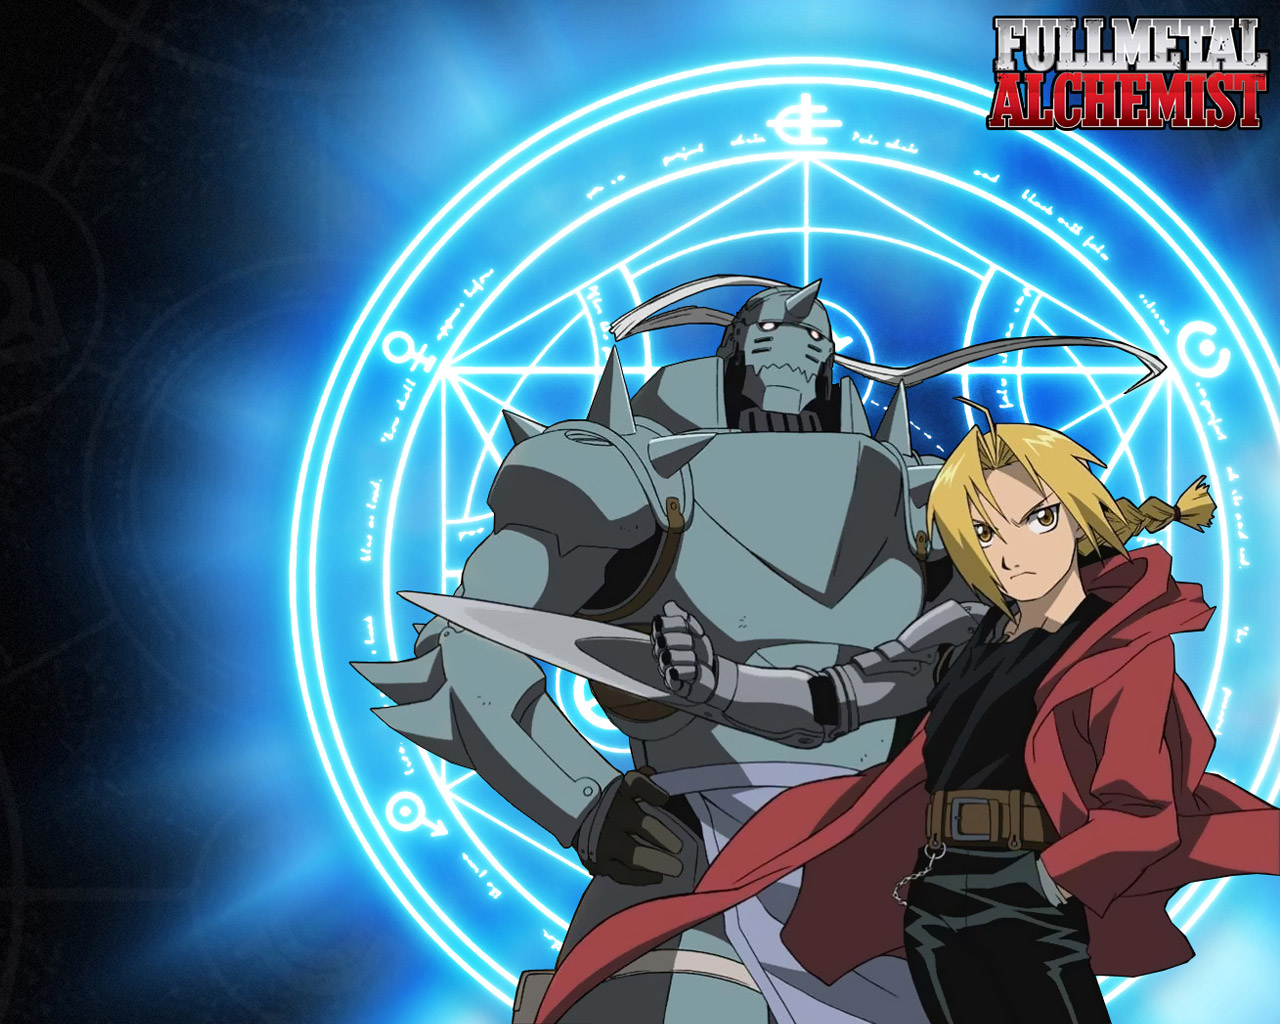 http://1.bp.blogspot.com/-7bxhoaWroqQ/UNCbW1J6afI/AAAAAAAAA5U/BTi9uY_tDwM/s1600/ed_and_al_fma_full_metal_alchemist_thread_desktop_1280x1024_hd-wallpaper.jpg